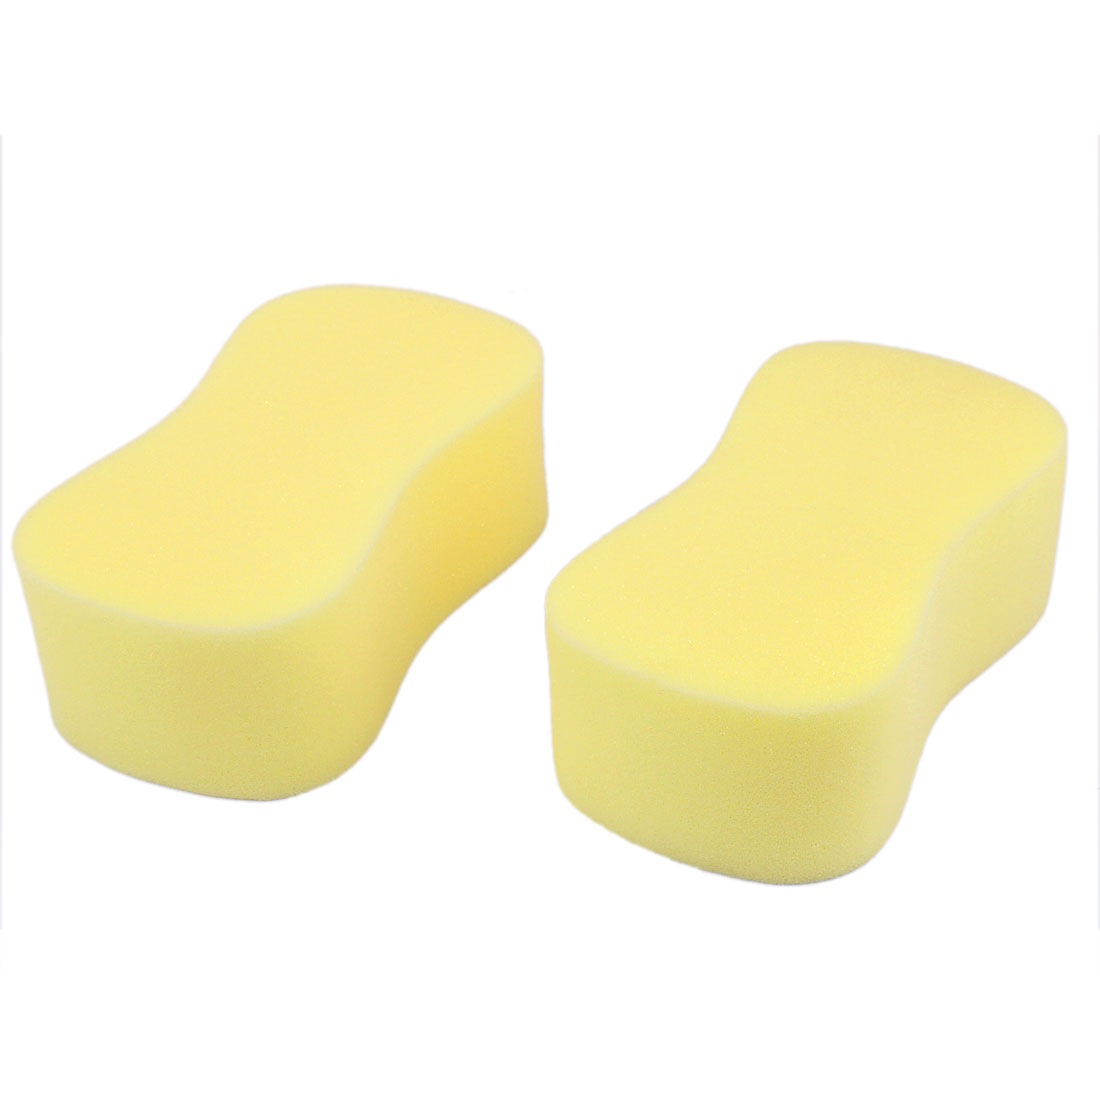 Pore Sponge Pad Car Vehicle Cleaning Tool Washing Brush Yellow 2Pcs